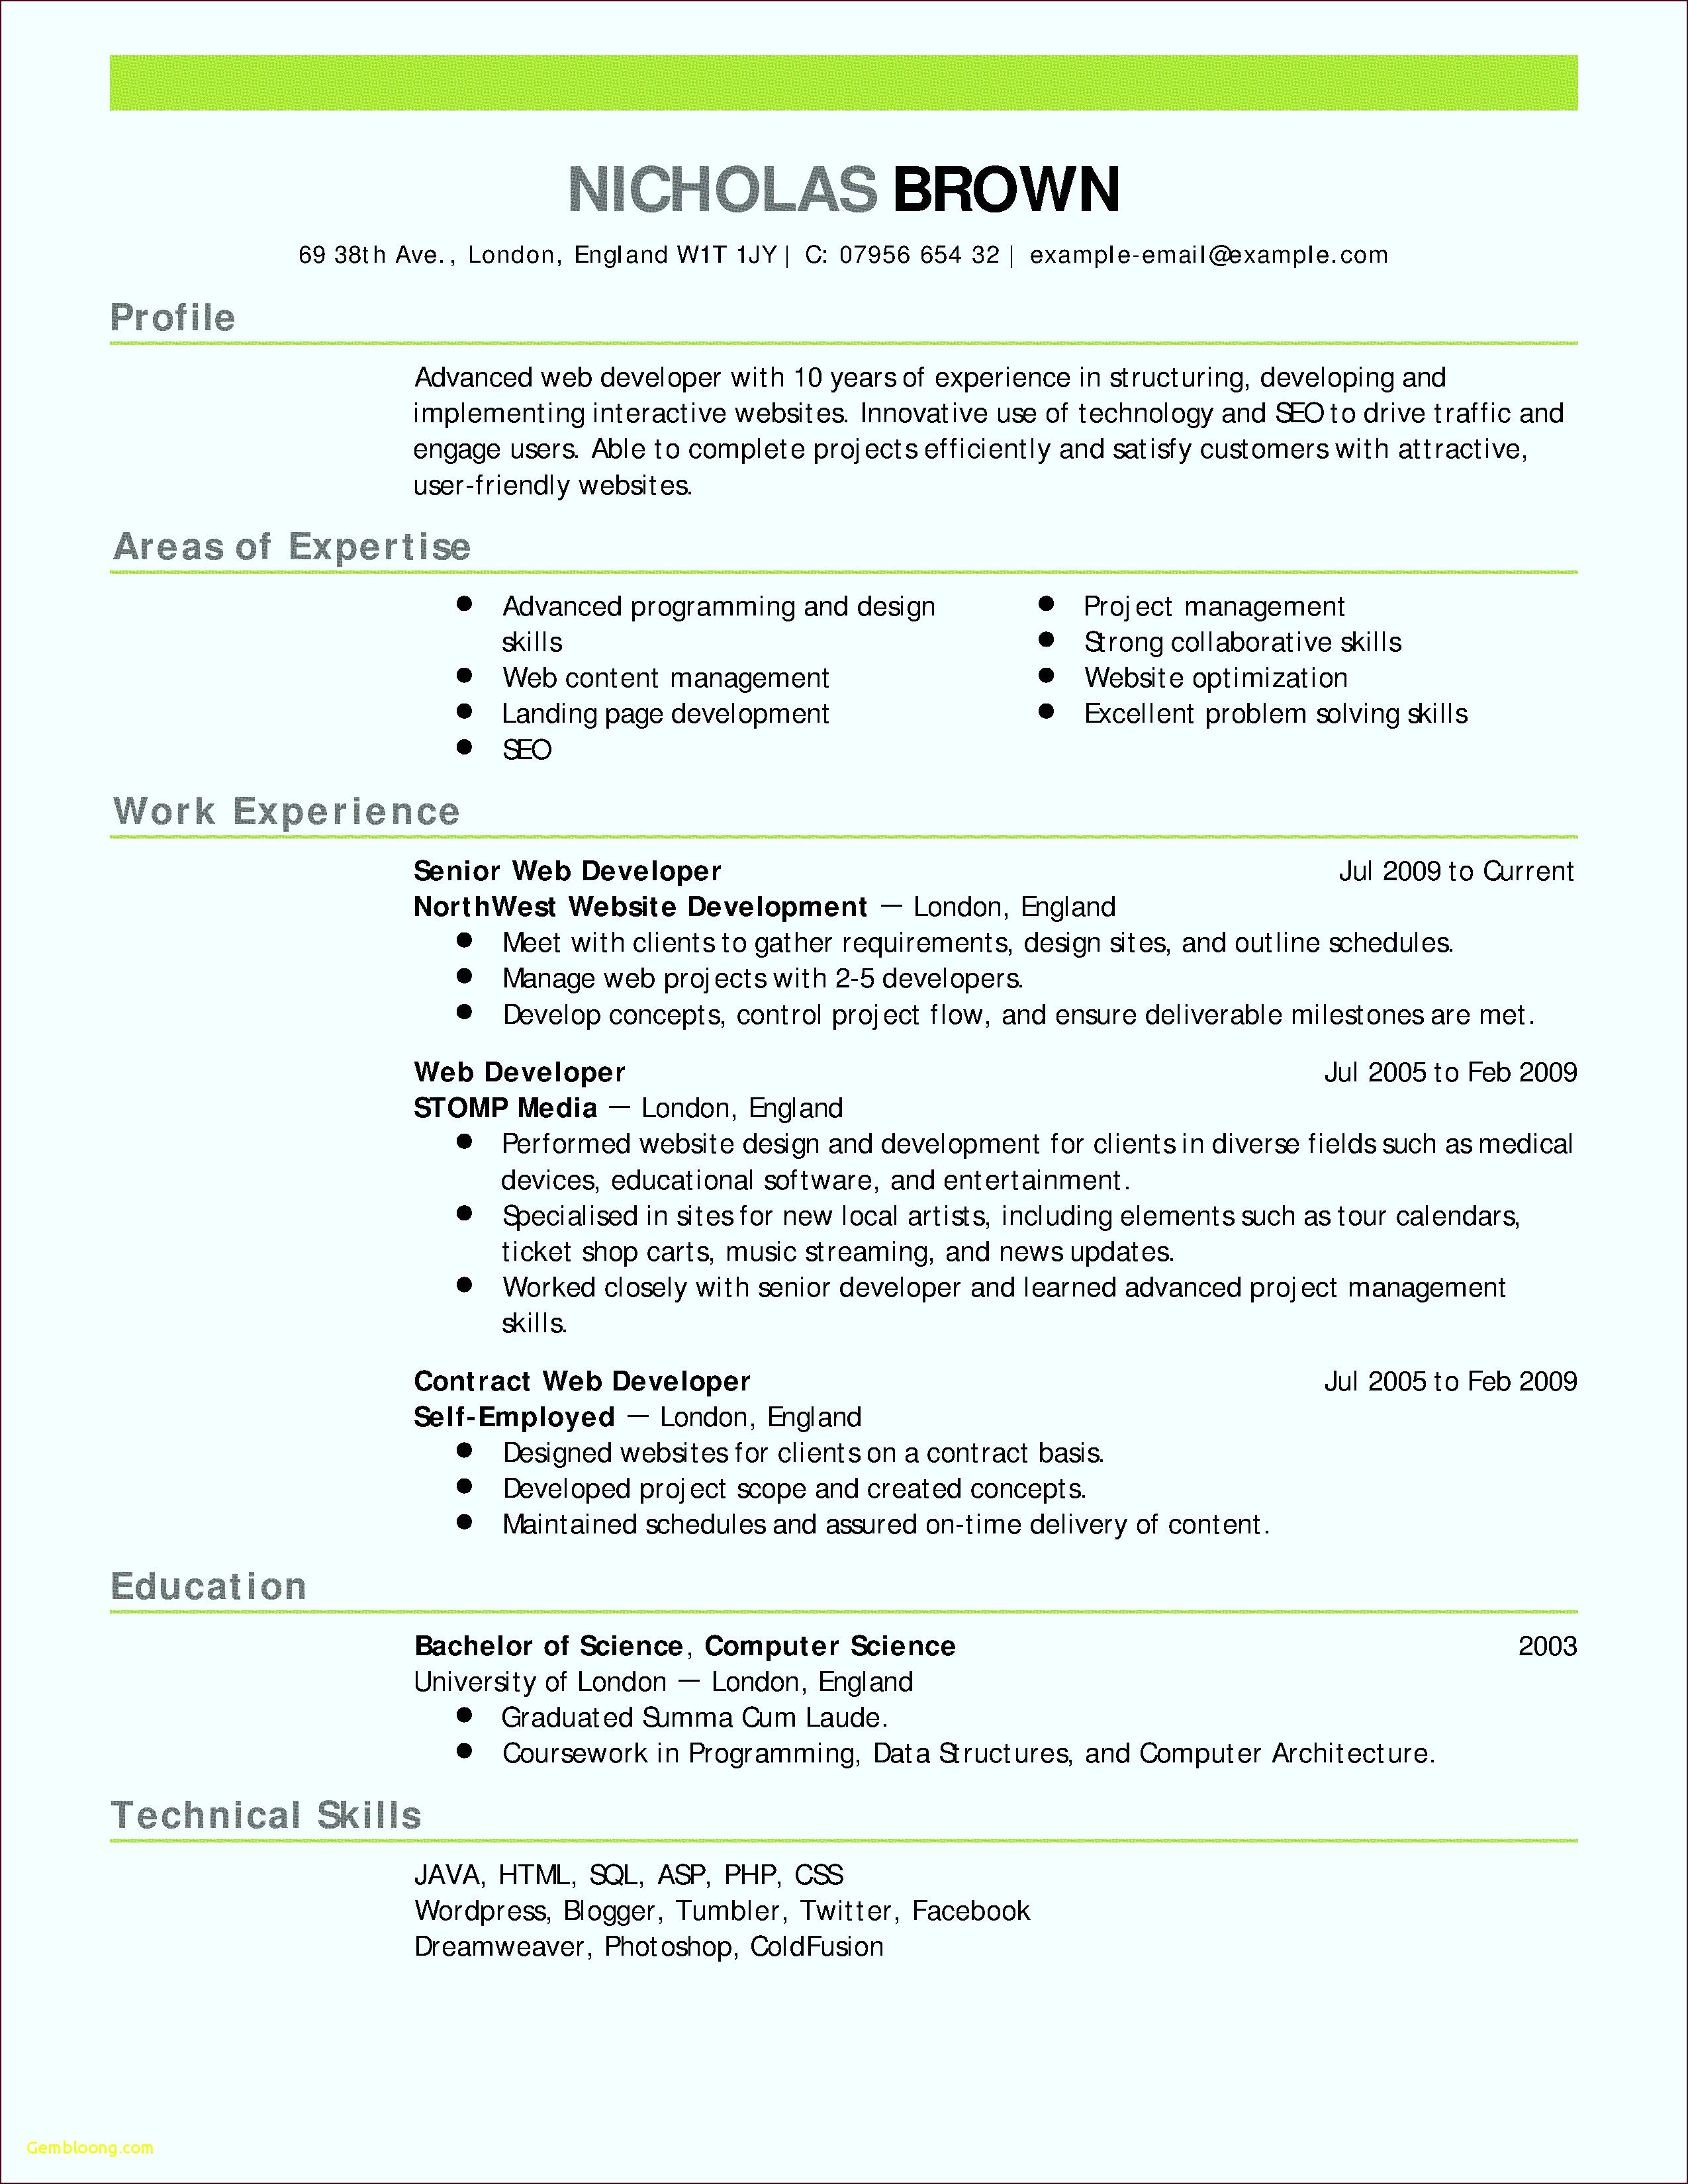 Job Resume Templates Download Download Professional Job Resume Template Od Specialist Cover Letter Lead wityr